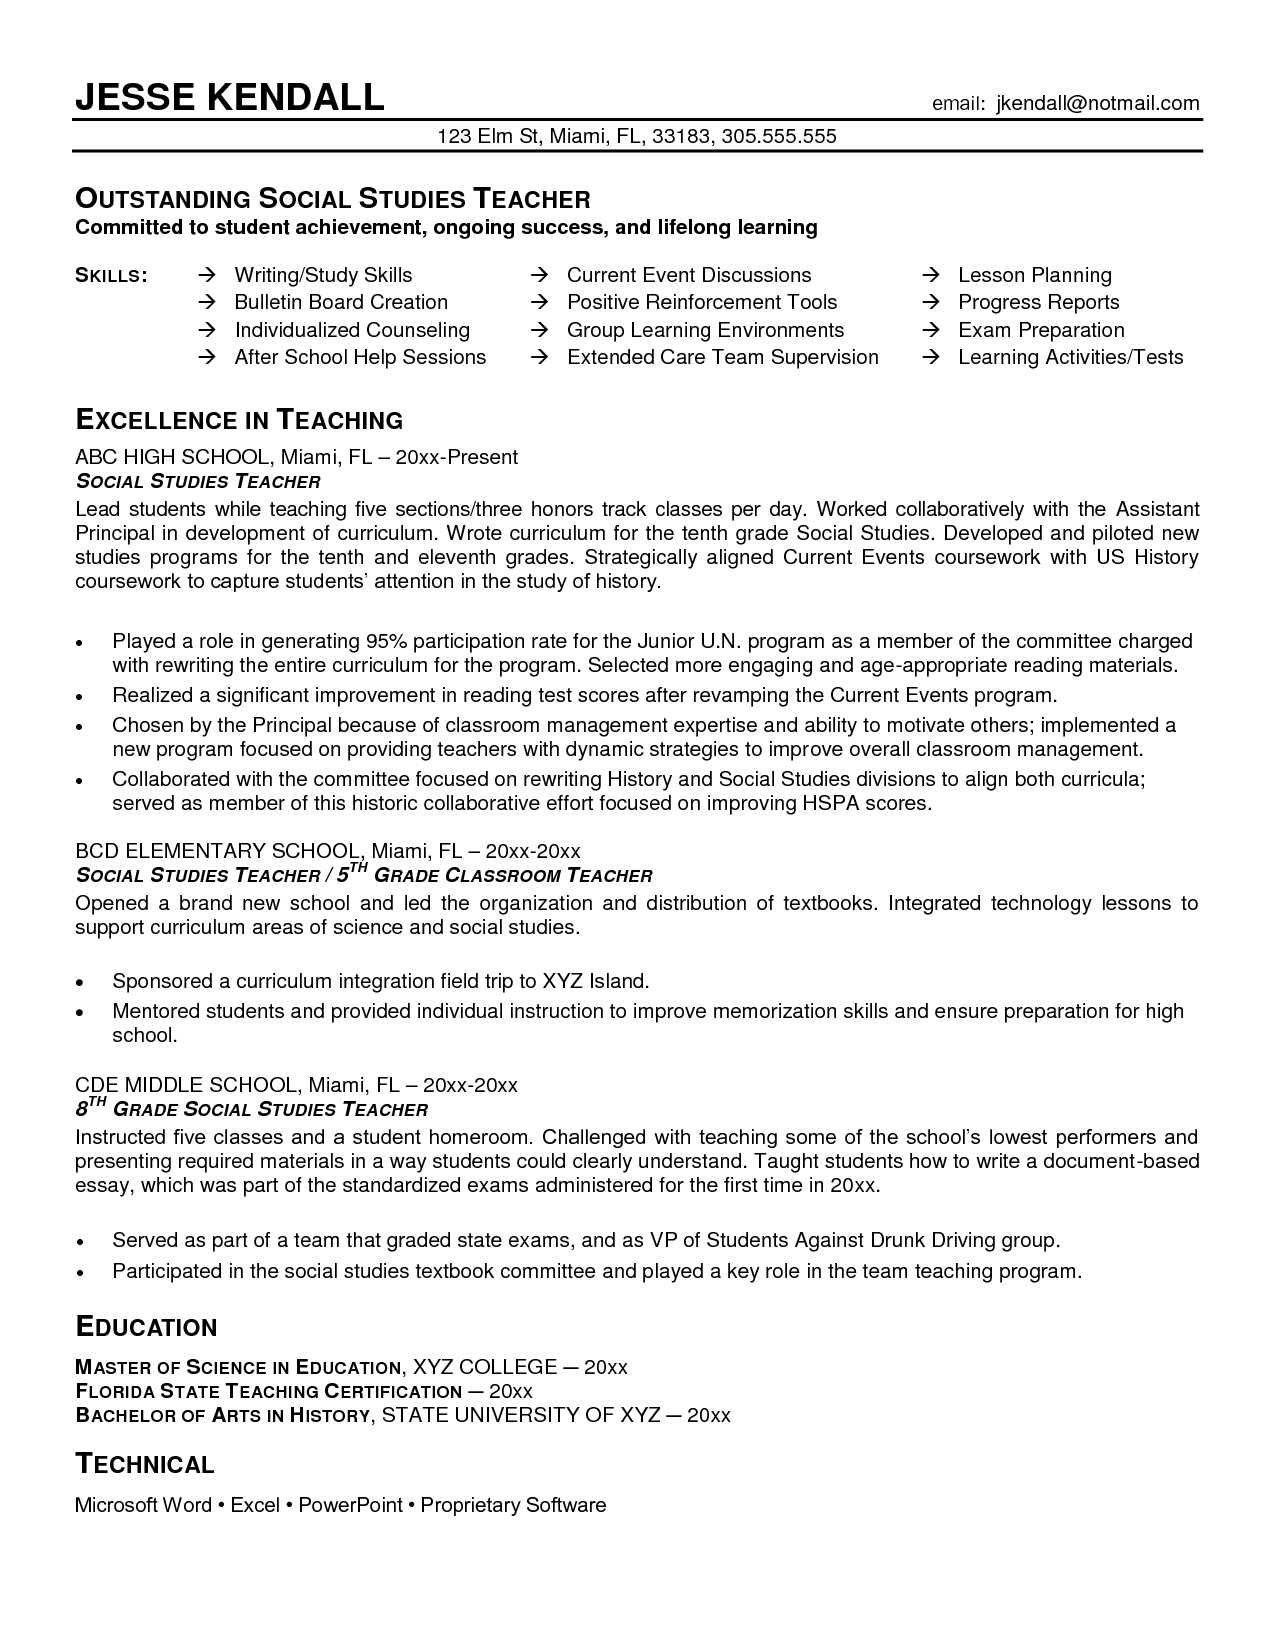 Attractive History Teacher Sample Resume   Google Search  History Teacher Resume